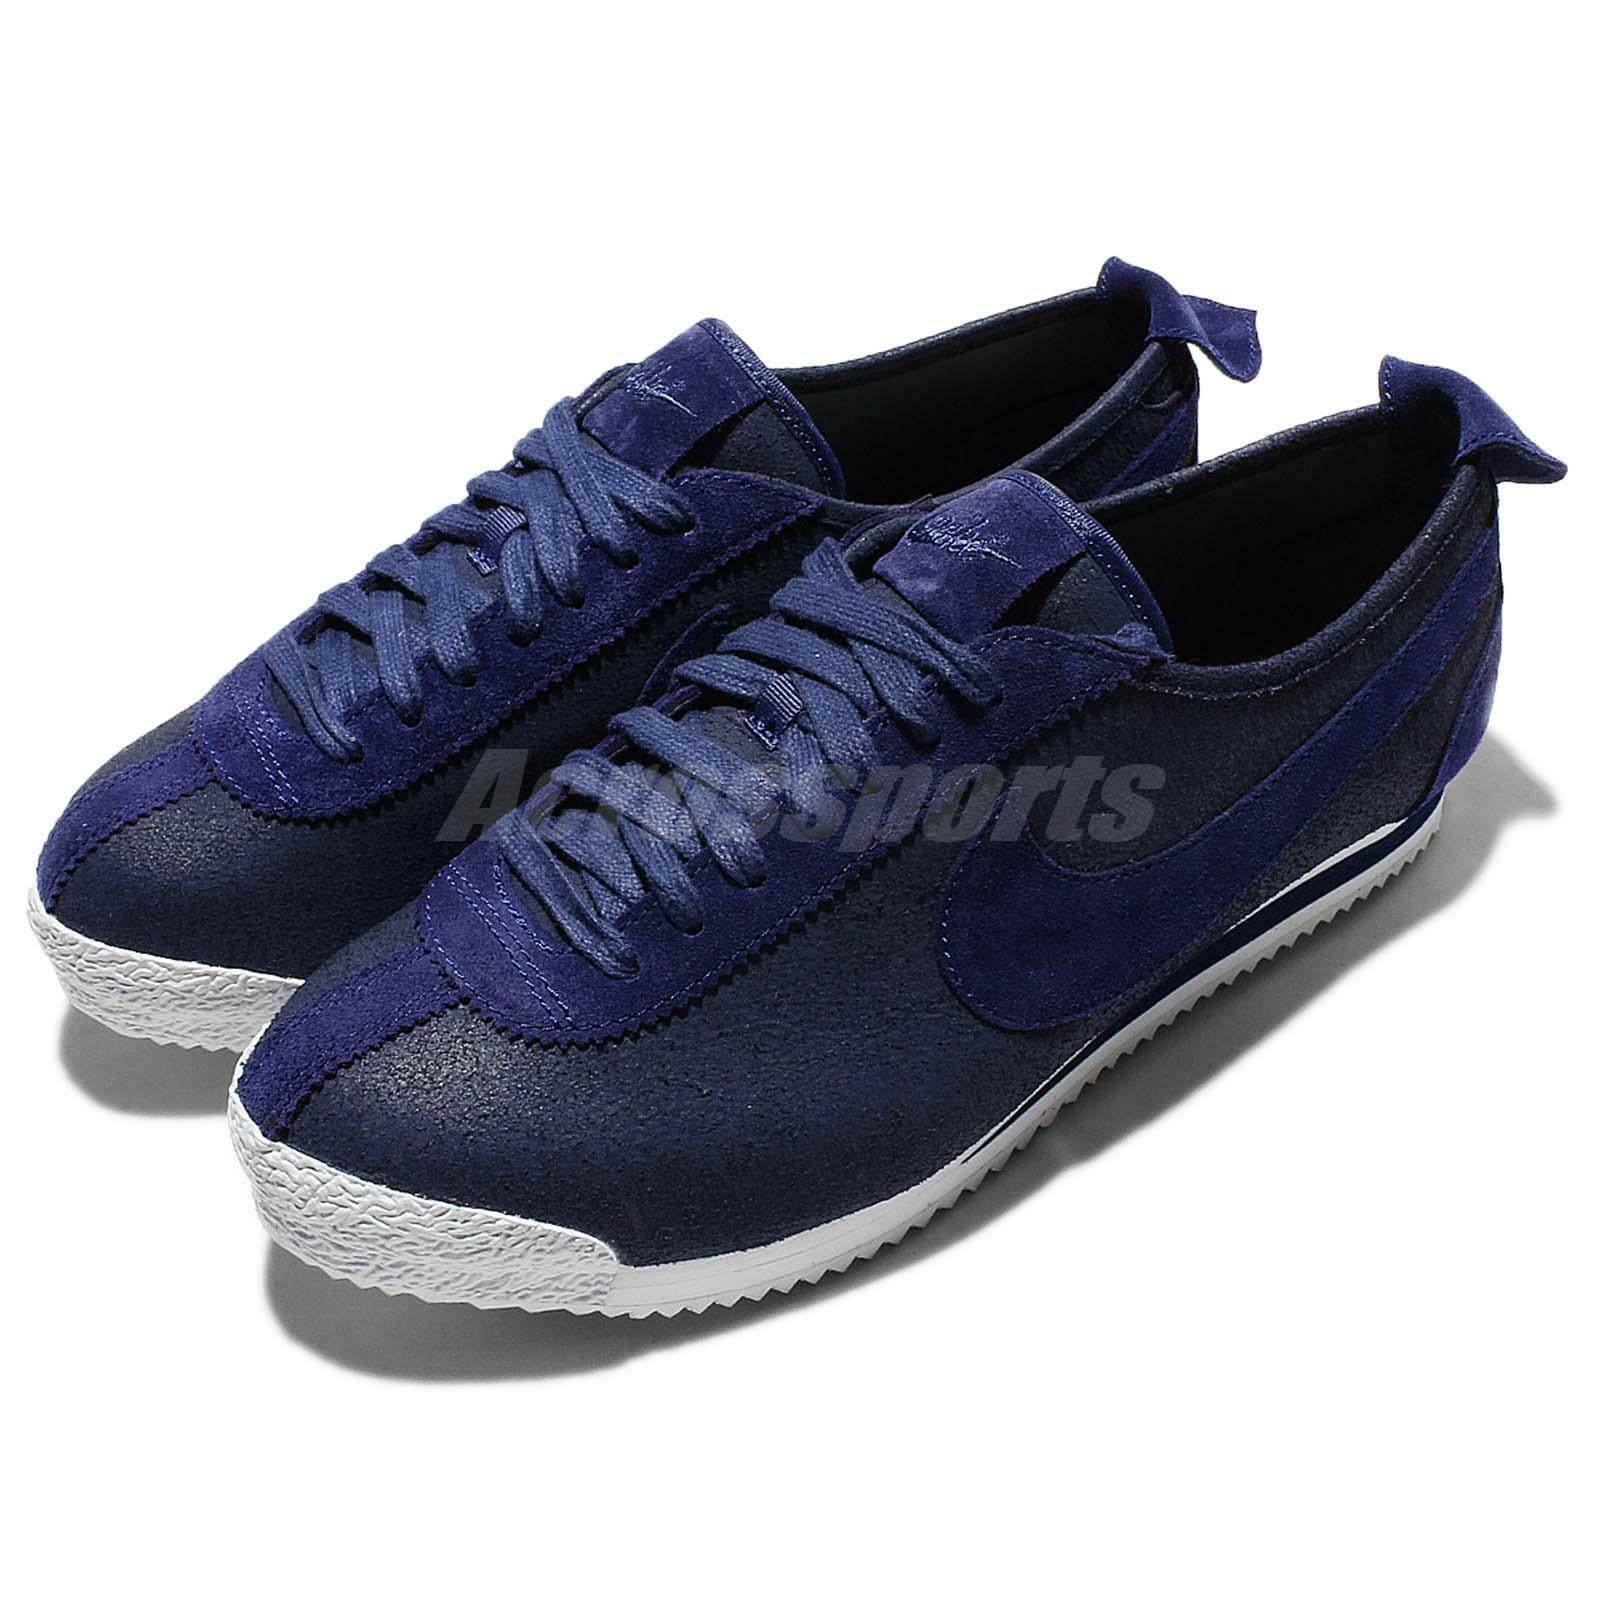 Nike Cortez 72 Loyal bleu blanc  Hommes Suede Casual Chaussures Sneakers 863173-400